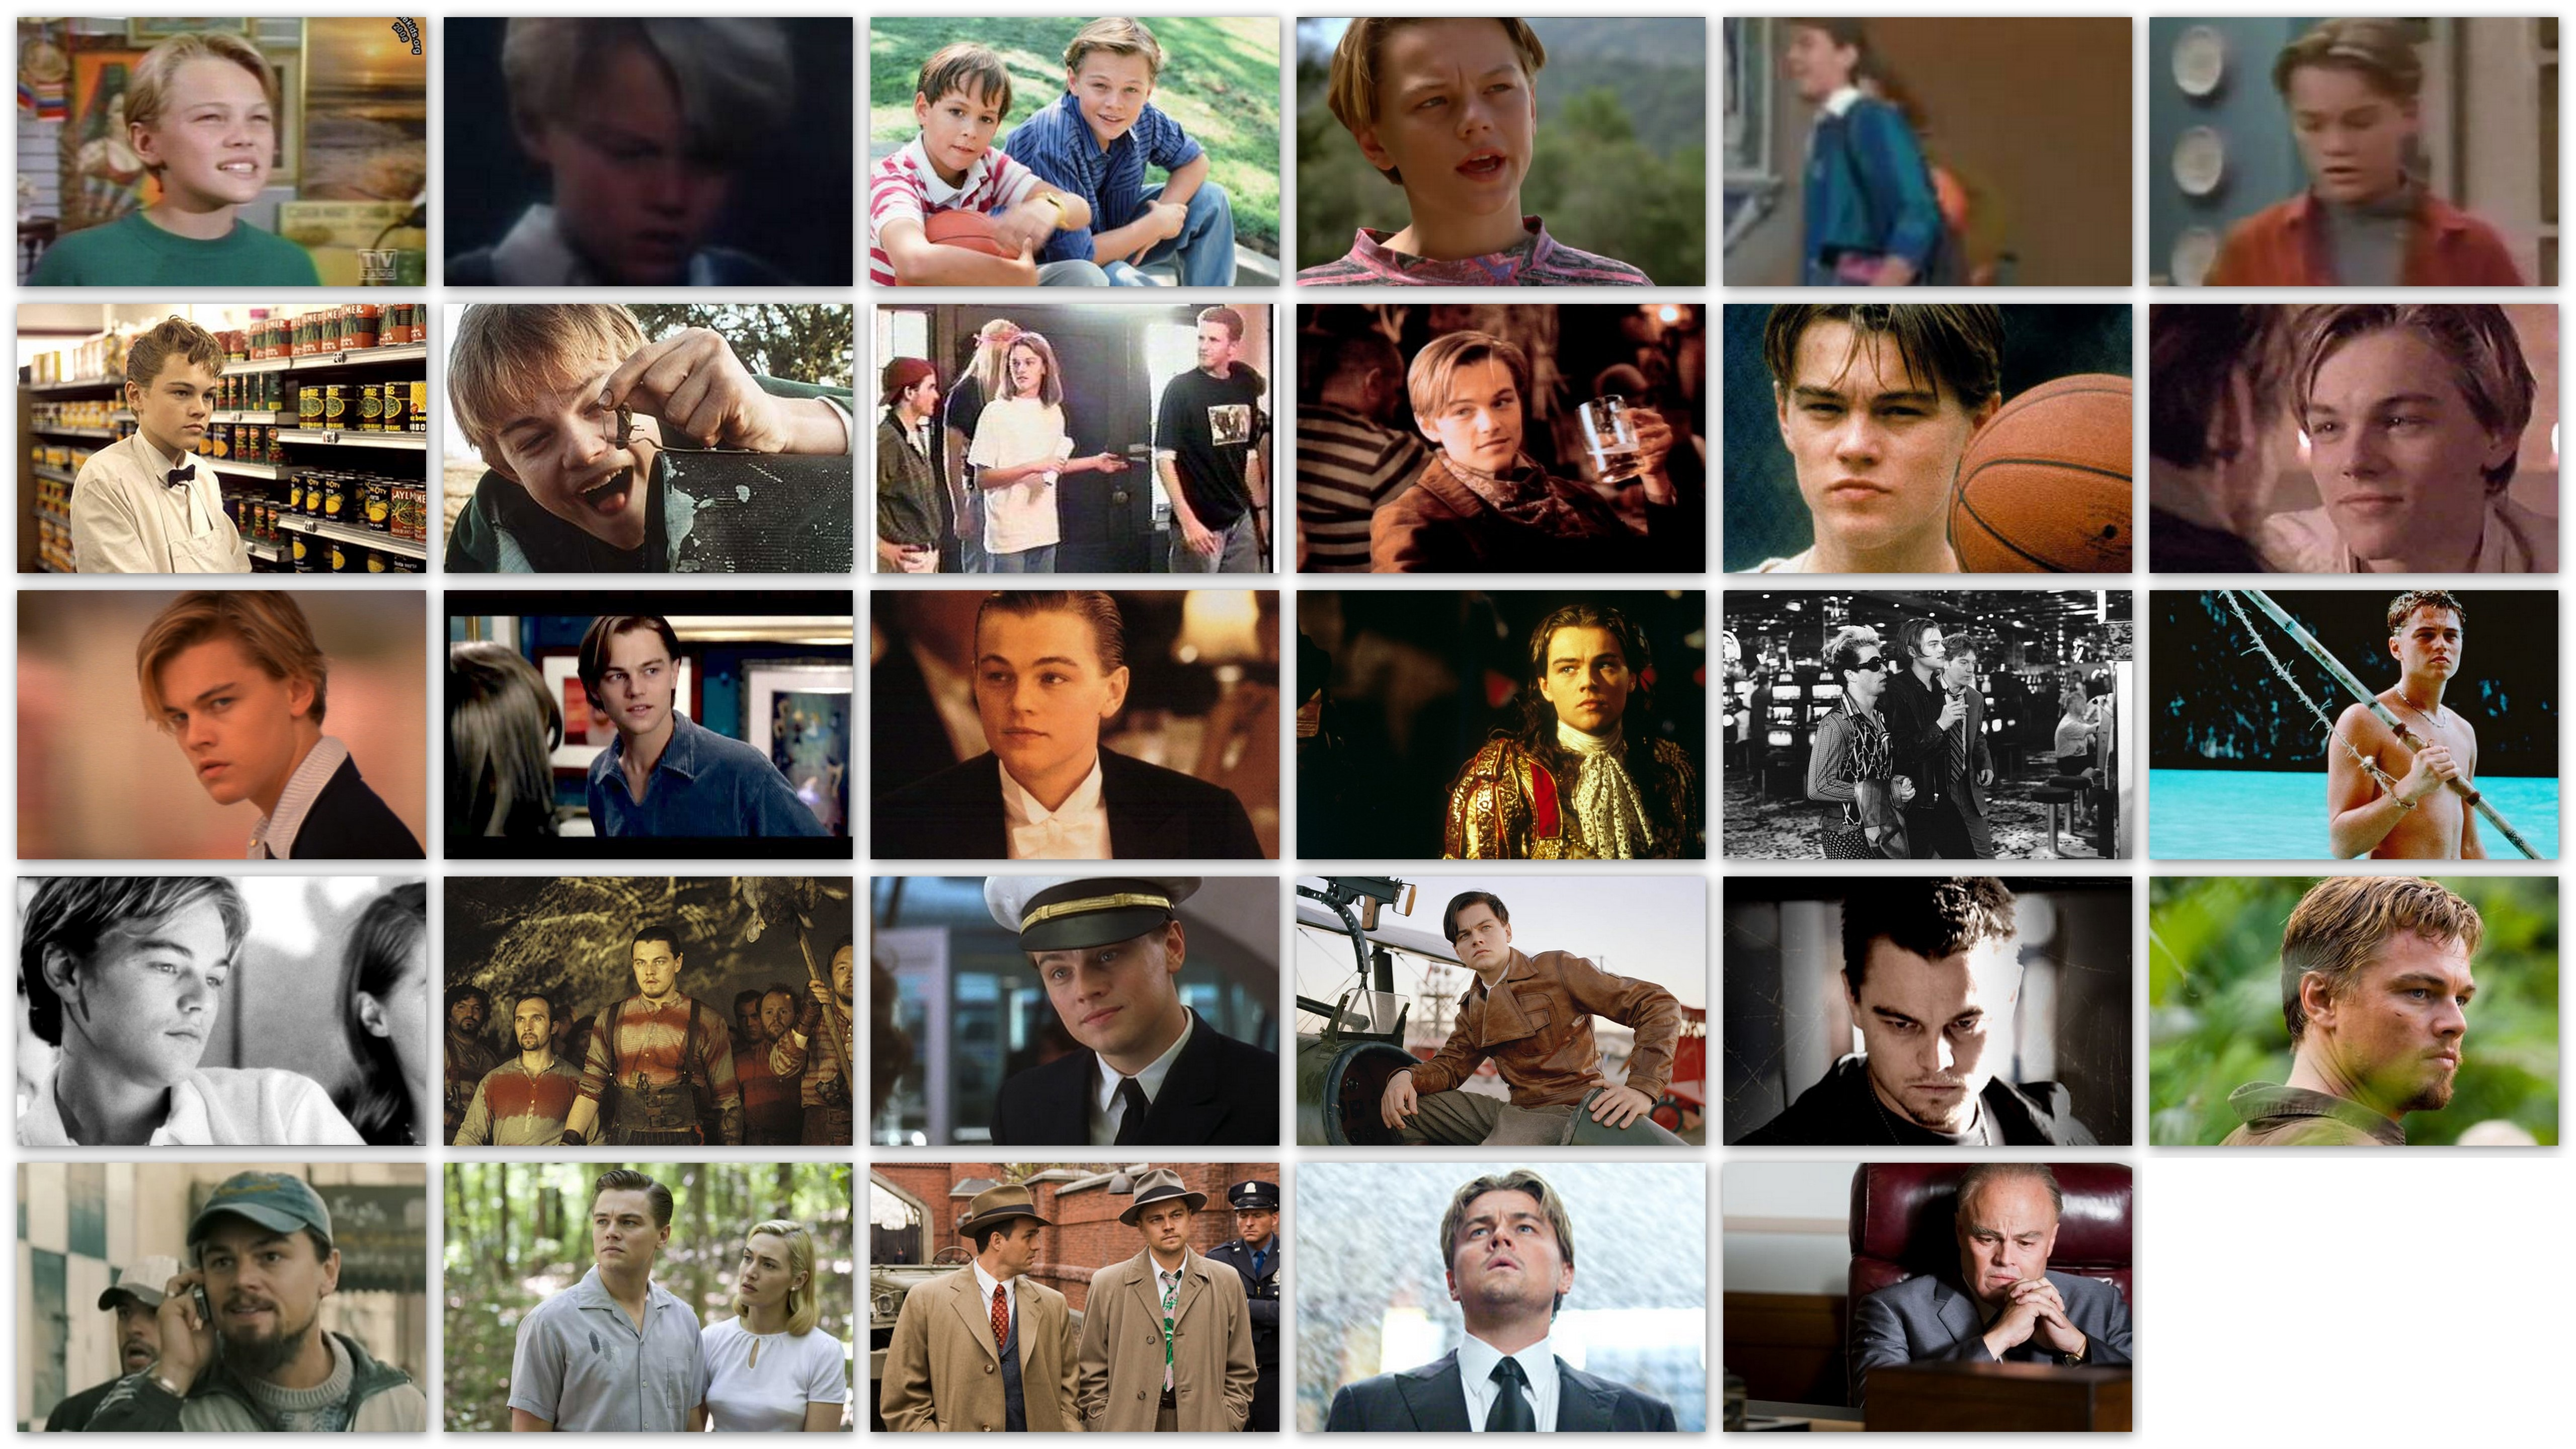 An overview of the roles of Leonardo DiCaprio